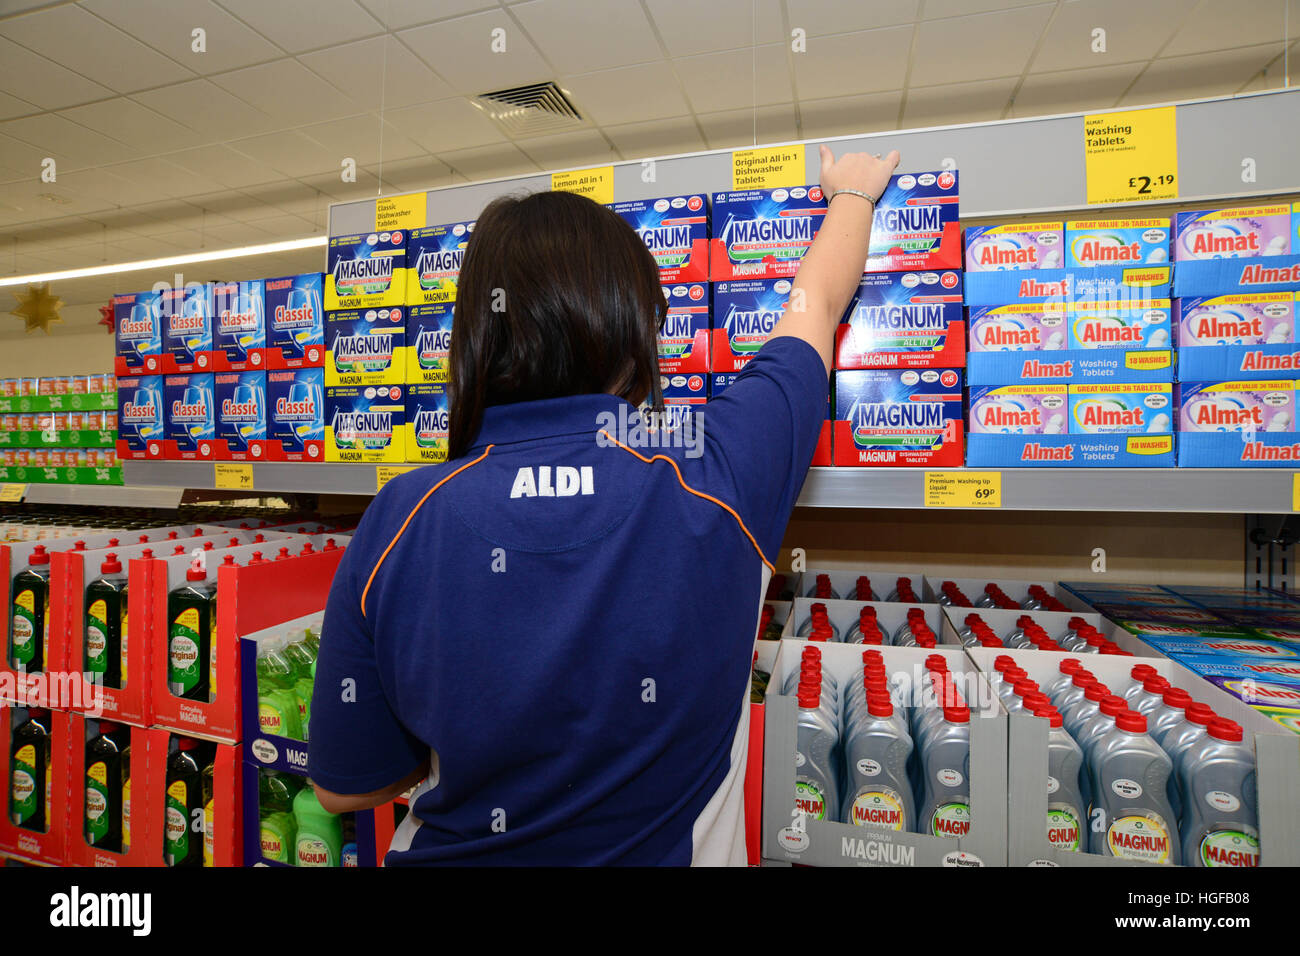 A store assistant stocking shelves in Aldi supermarket. - Stock Image